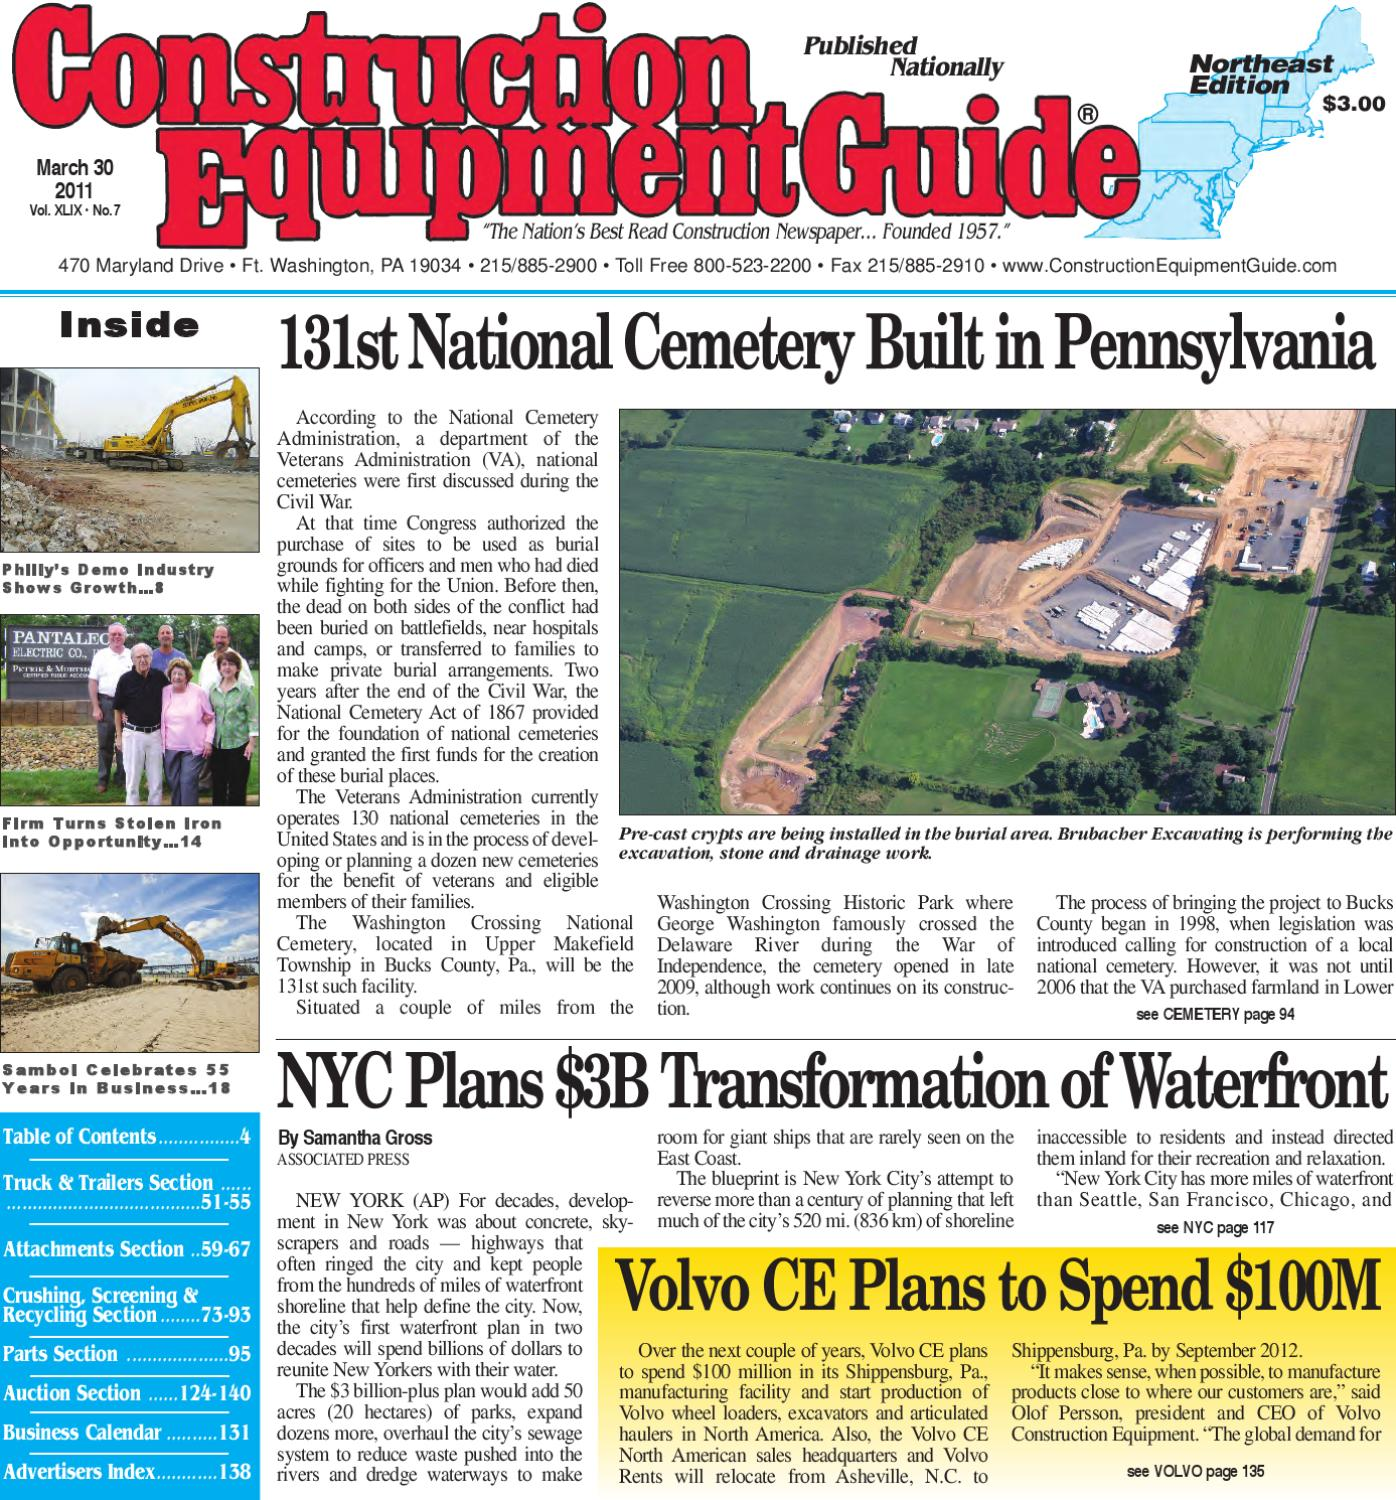 Northeast 7 2011 By Construction Equipment Guide Issuu Servo Extension Cord Snaps Wiring Chuck Plug Holder Alex Nld